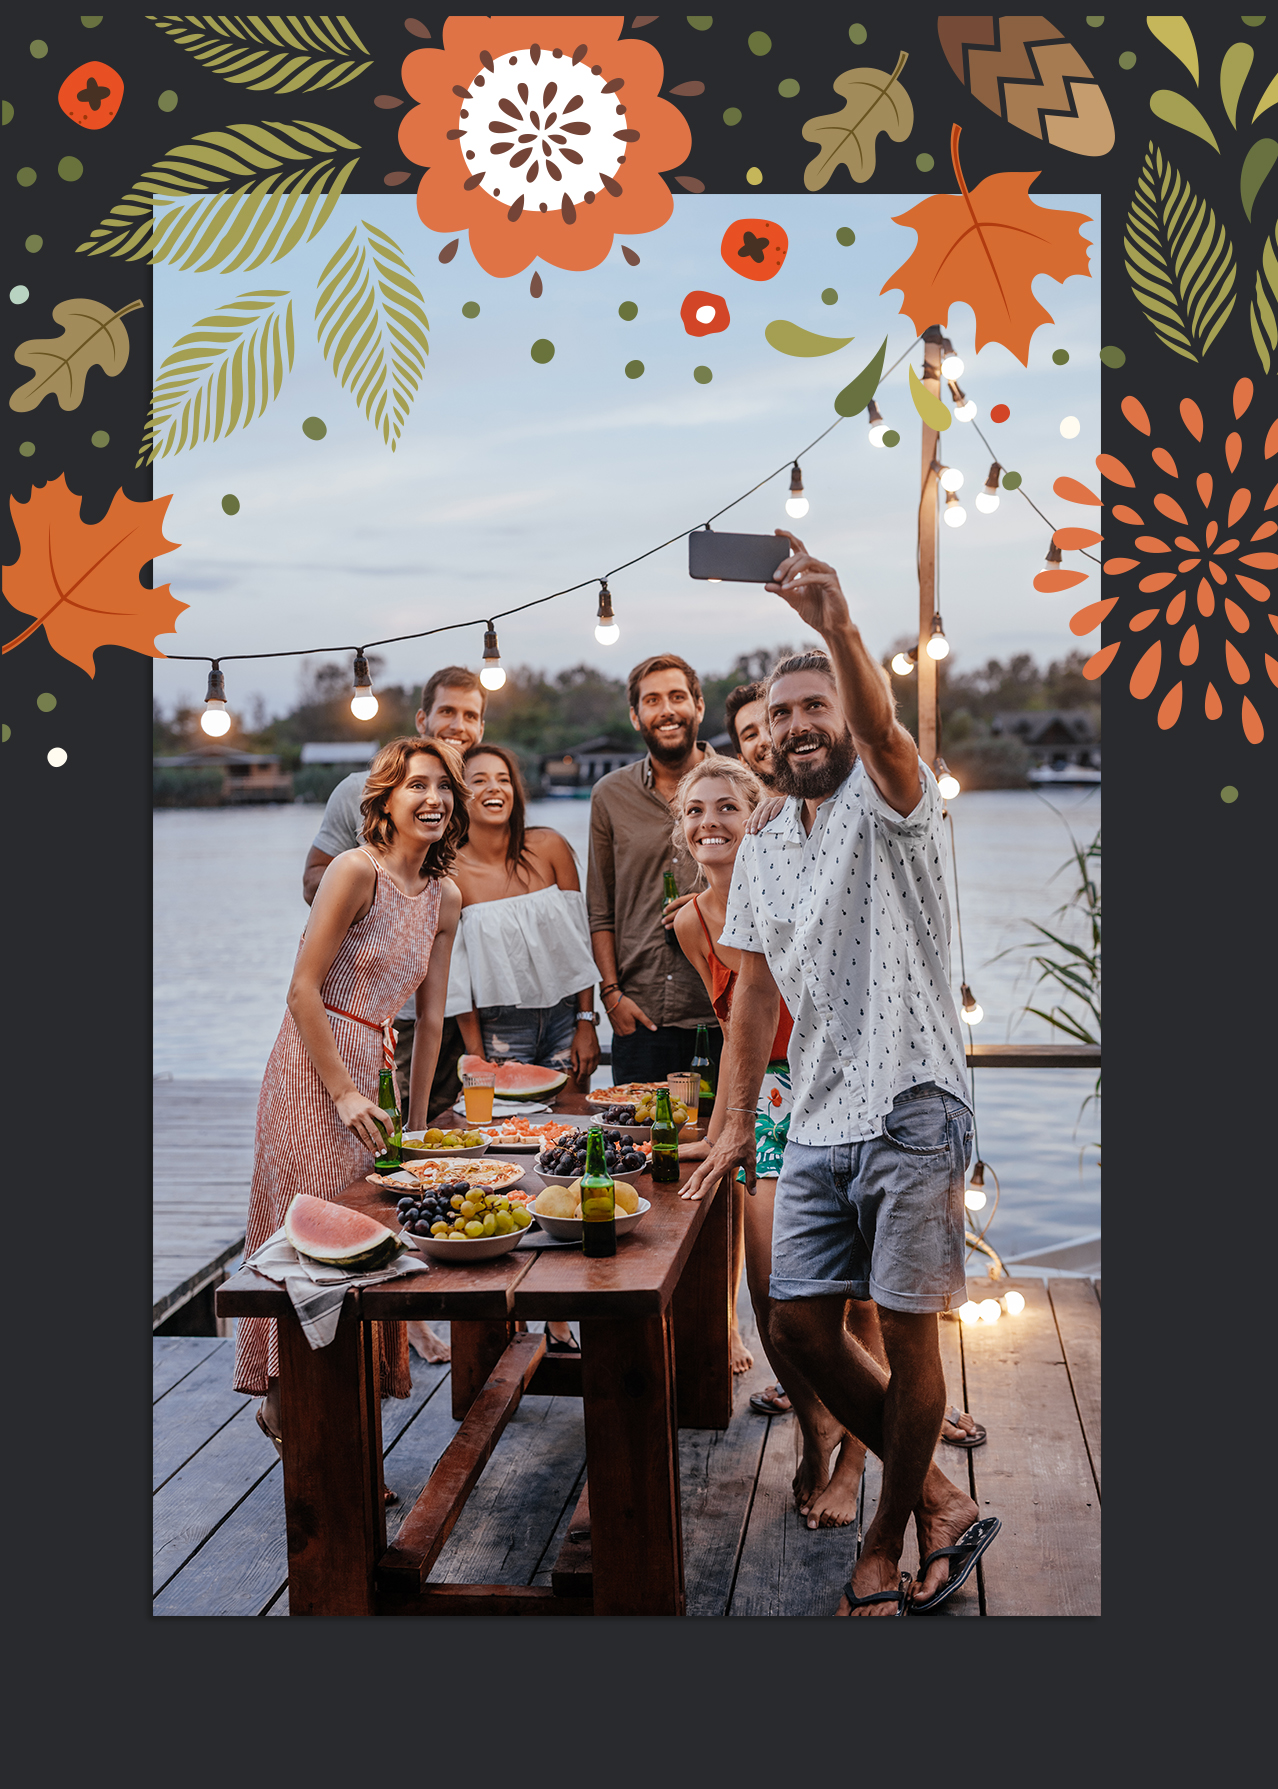 Thanksgiving photo with group near a lake